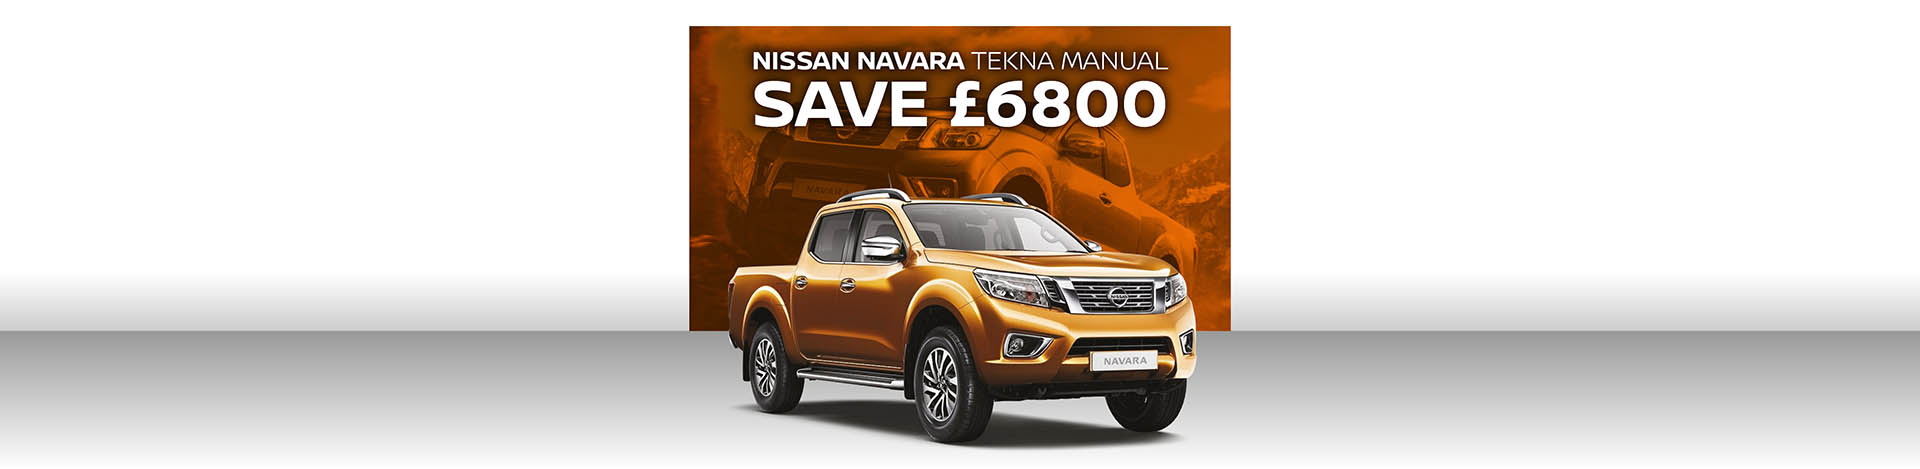 Nissan Navara Tekna Manual Offer